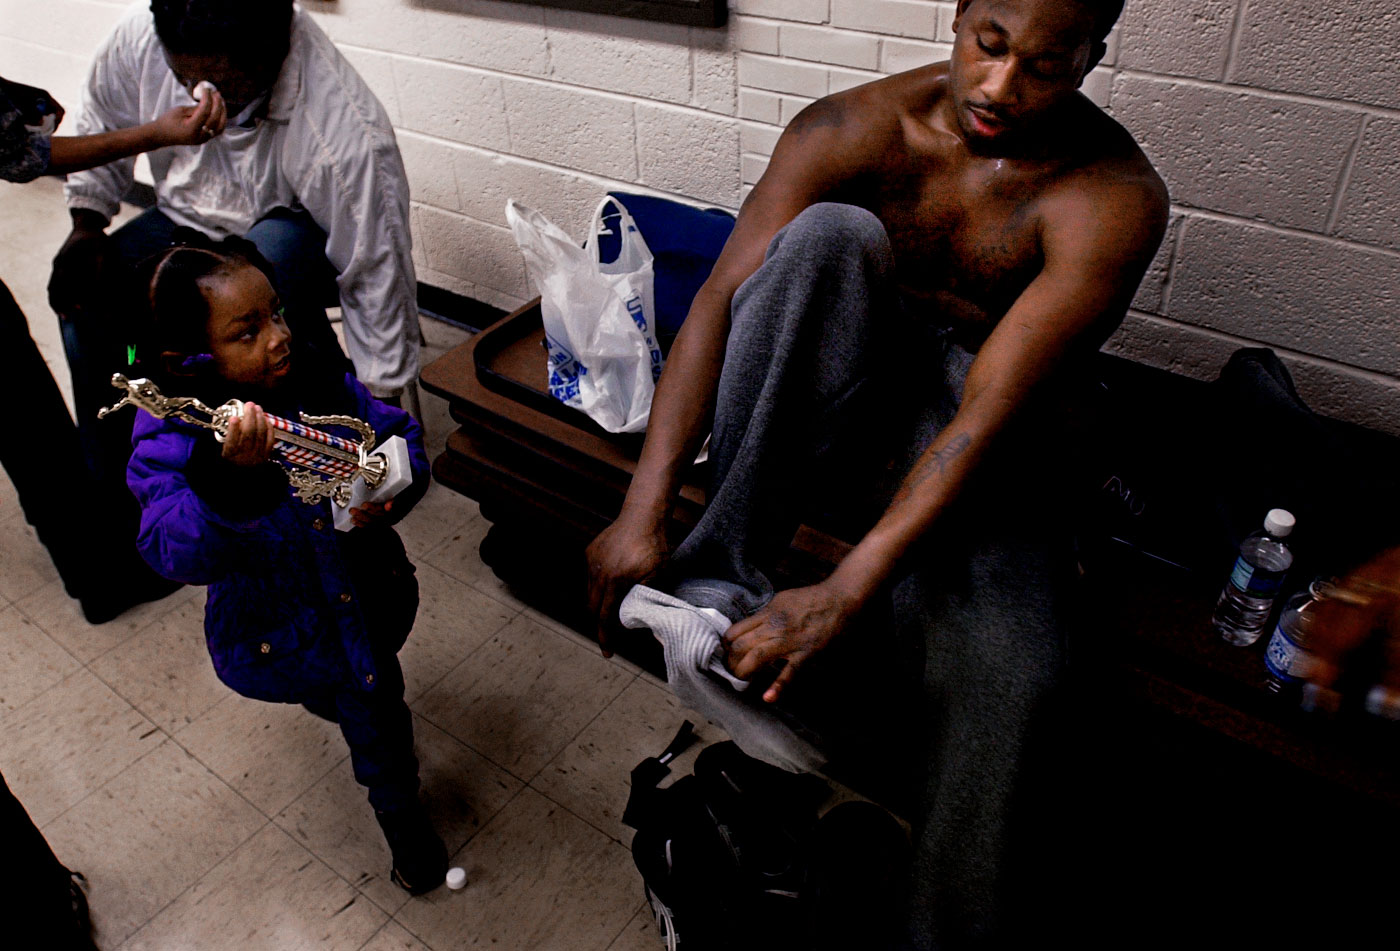 Darnelle Hobson looks up to her father, James Hobson, who won the heavyweight division on Saturday night, the final night of the competition. At left is the man he beat for the championship.